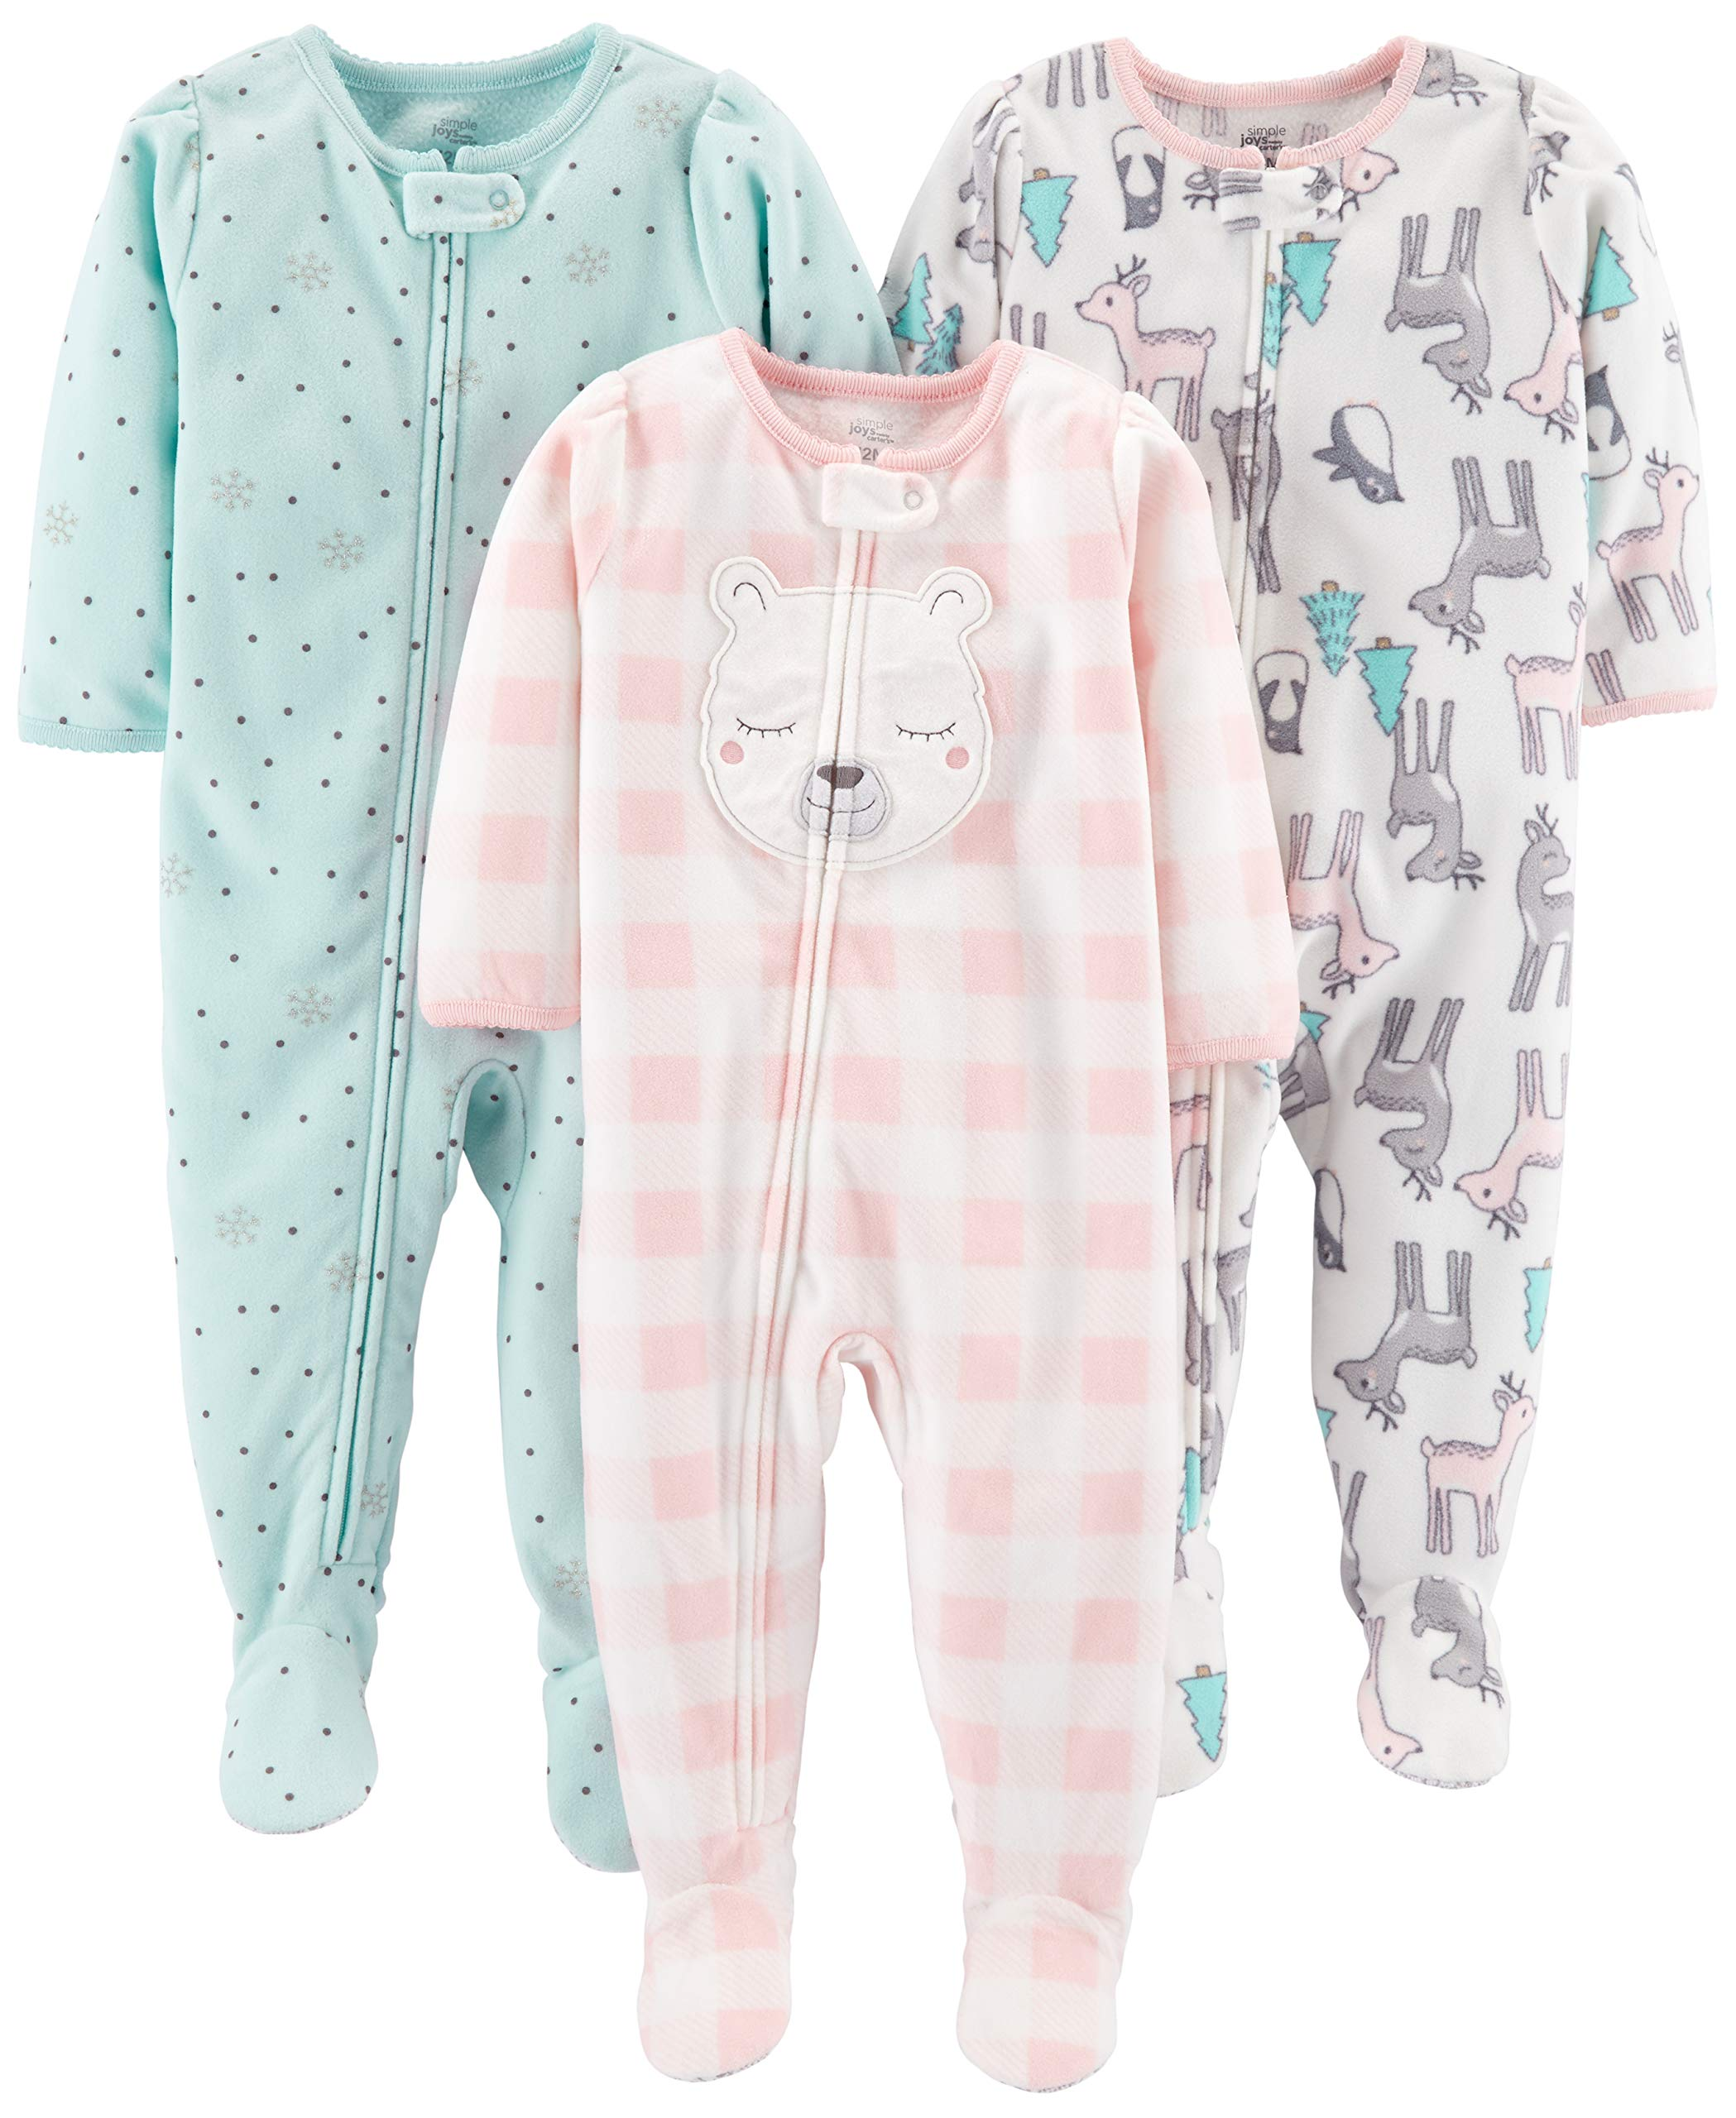 Simple Joys by Carter's Girls' Toddler 3-Pack Loose Fit Flame Resistant Fleece Footed Pajamas, Deer/Blue Snowflakes/Pink Check, 3T